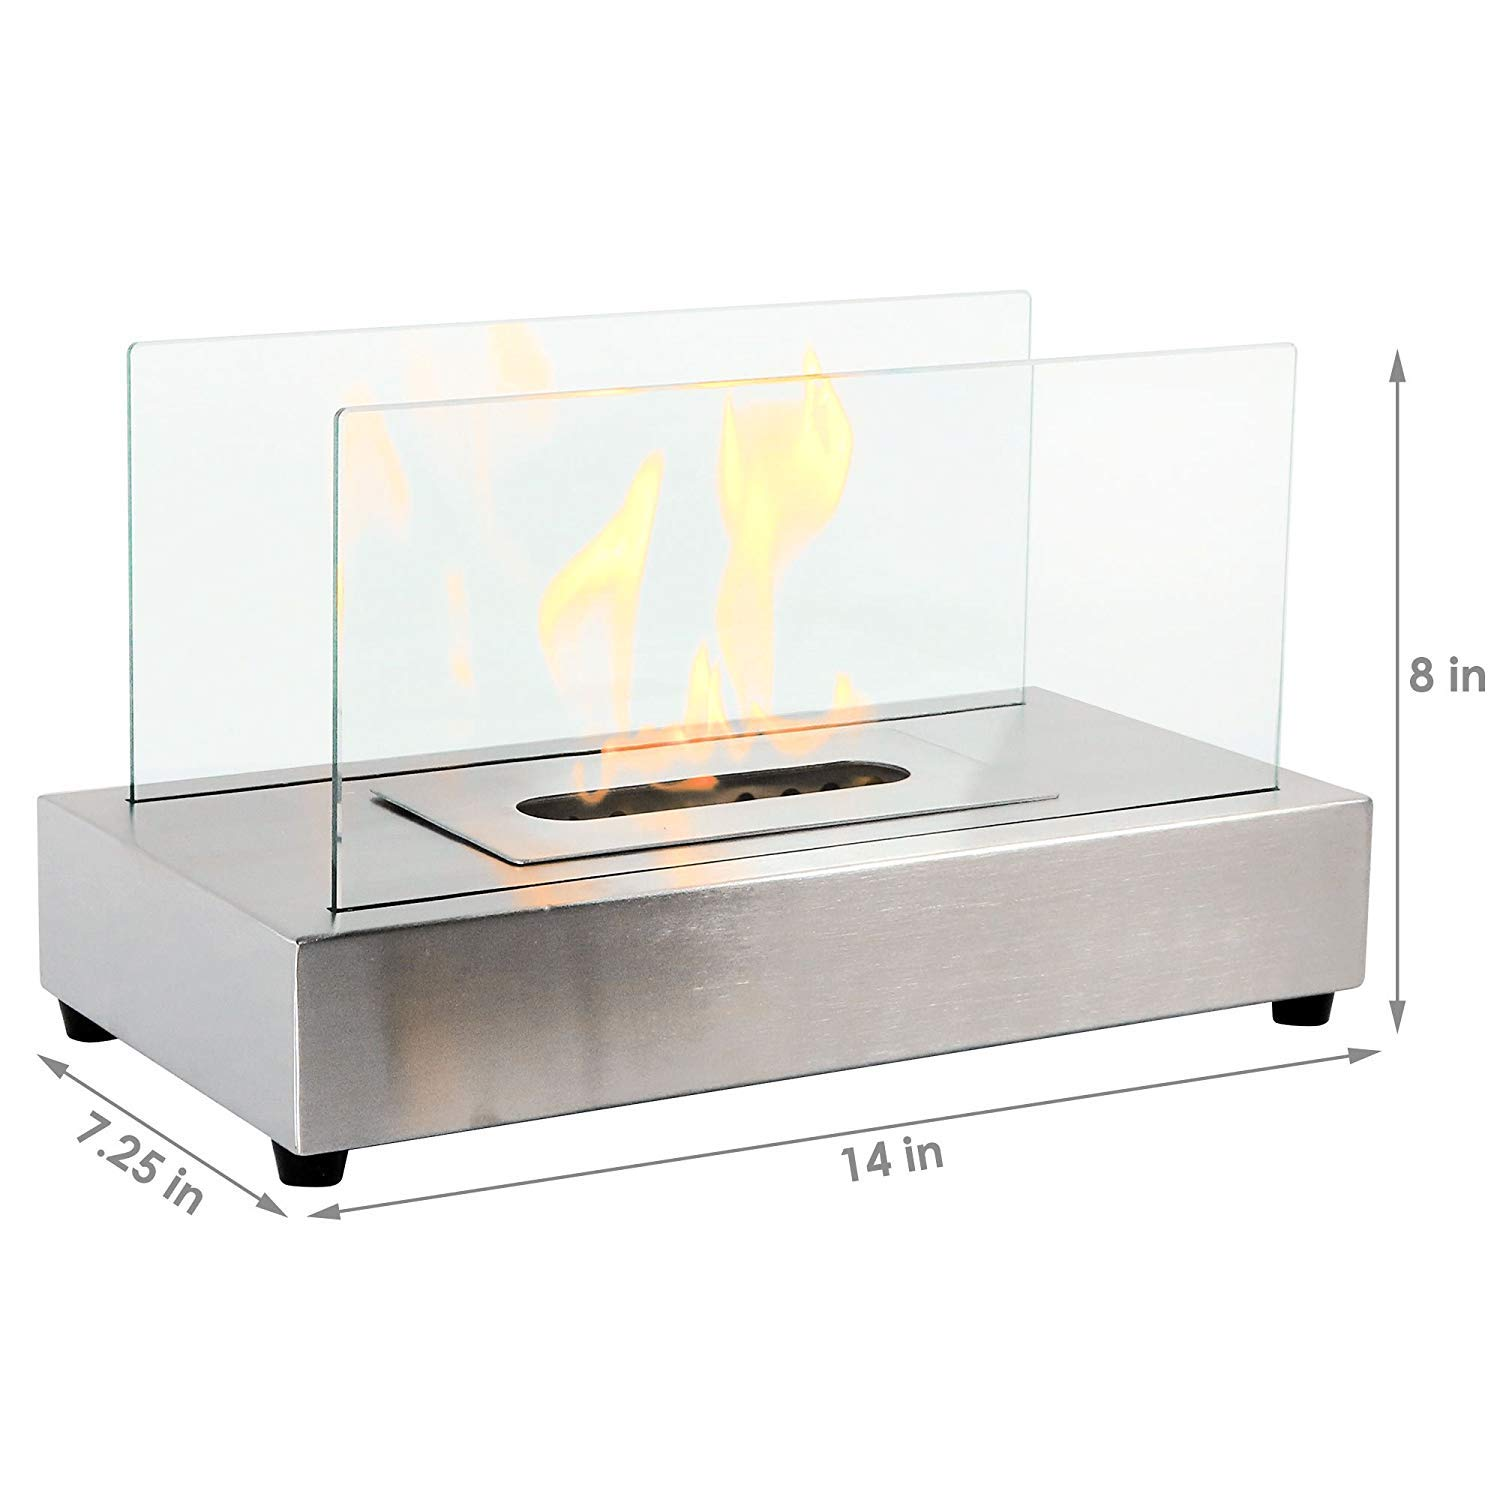 Cool Regal Flame Avon Ventless Indoor Outdoor Fire Pit Tabletop Portable Fire Bowl Pot Bio Ethanol Fireplace In Stainless Steel Realistic Clean Burning Download Free Architecture Designs Scobabritishbridgeorg